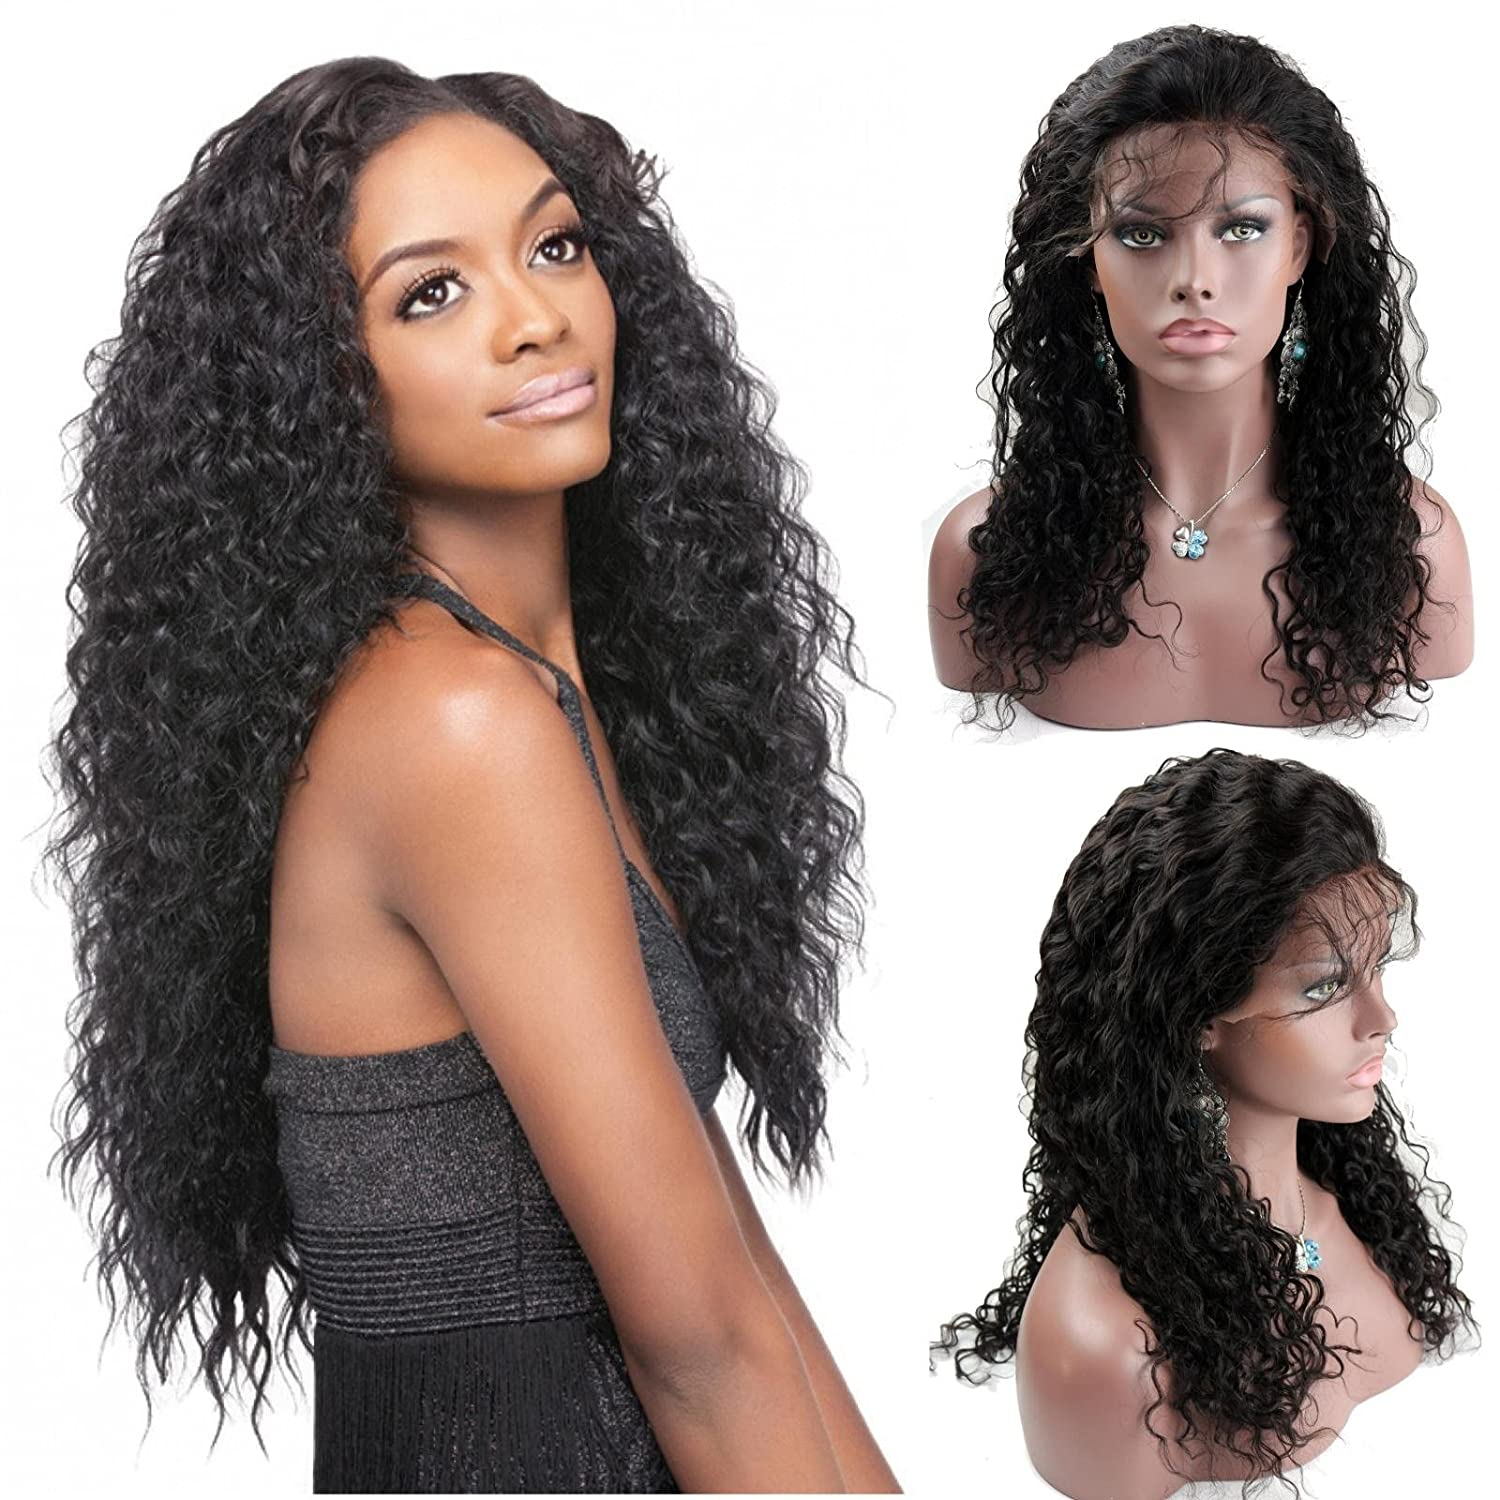 Are glueless full lace wigs for black women are